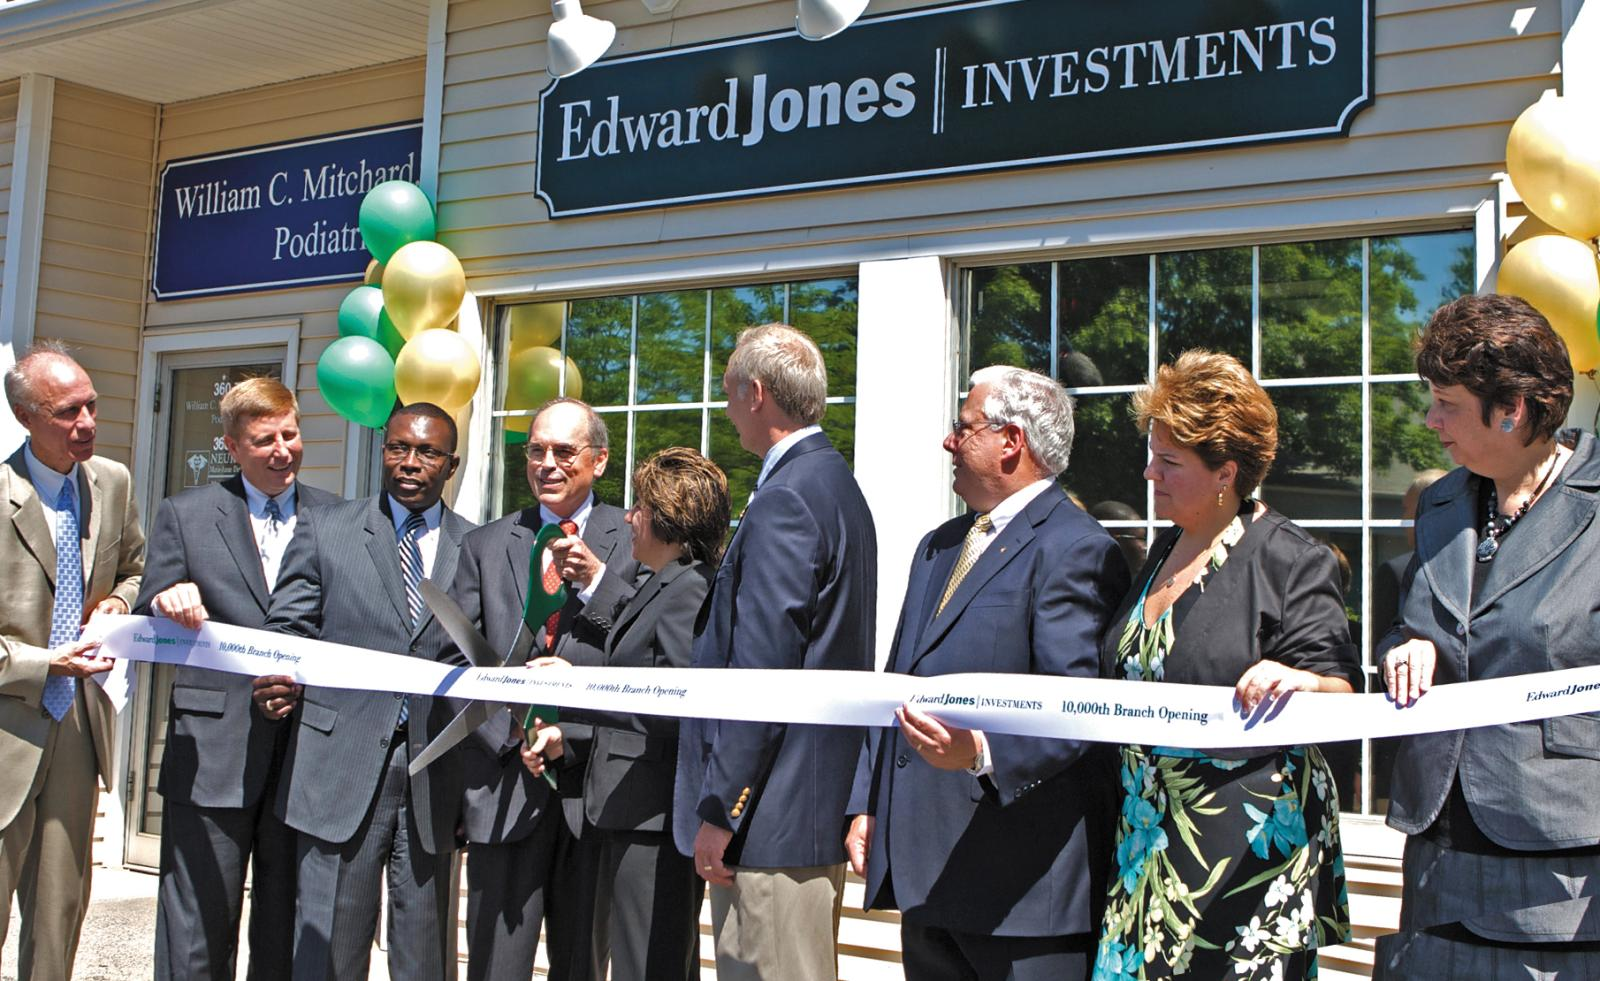 Photograph of John Bachmann opening the 10,000th branch office in 2008.